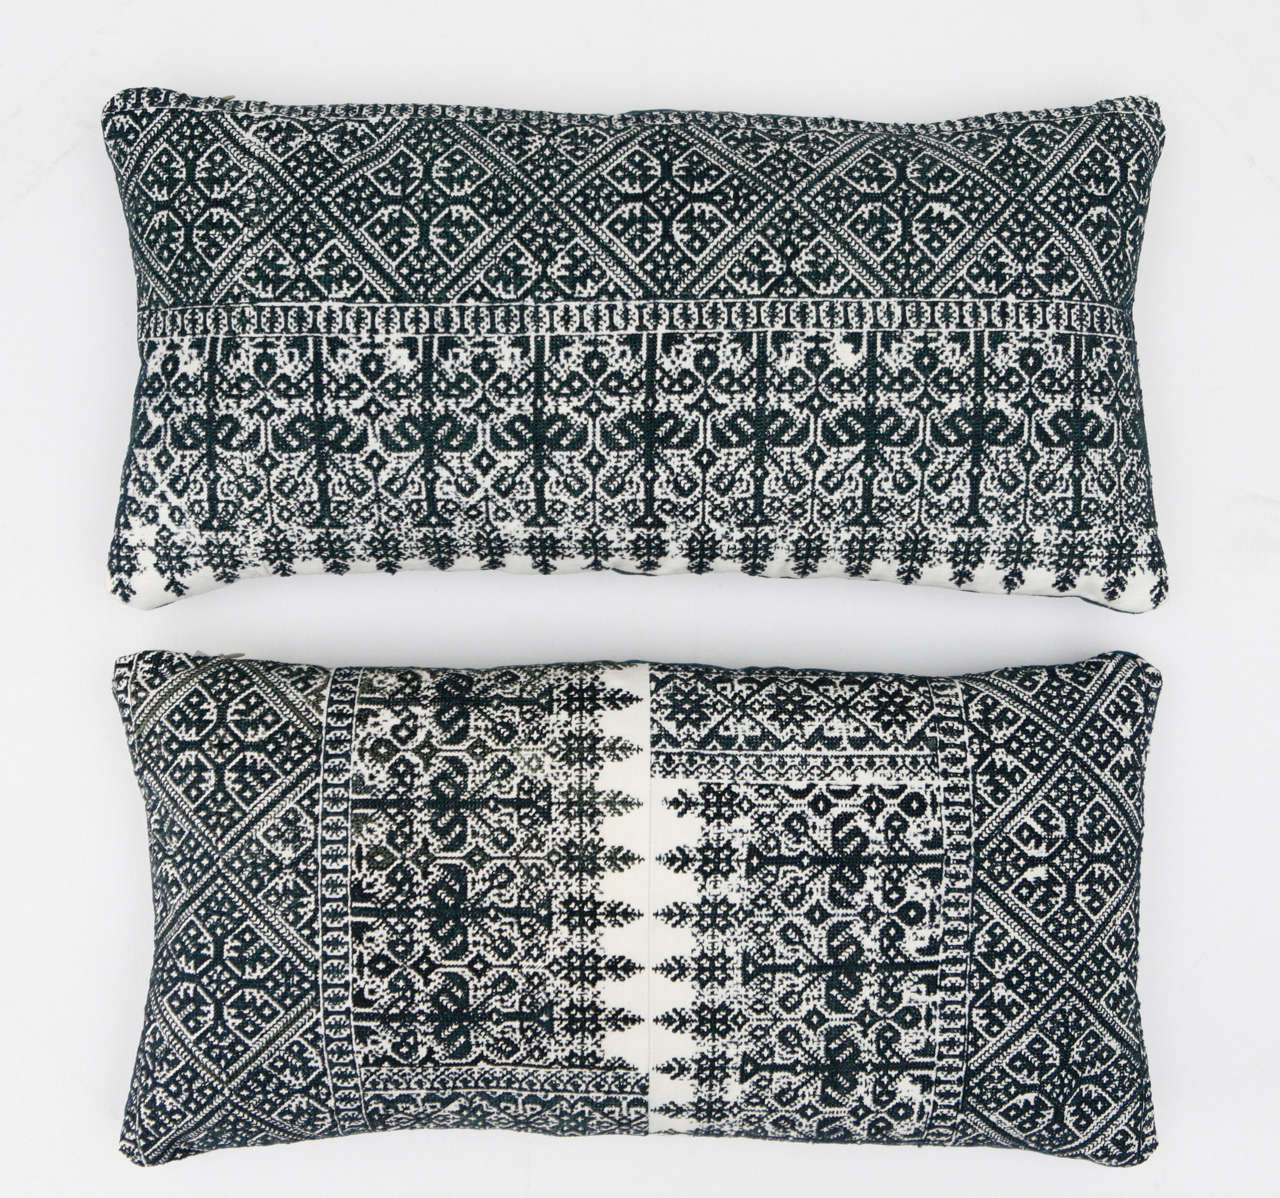 Antique Moroccan textiles from the city of Fez. Intricate all-over silk floss on cotton embroidery produces a durable fabric. Bottom image is made up of two panels sewn in the middel. The designs are based on centuries old Mehindi (henna hand